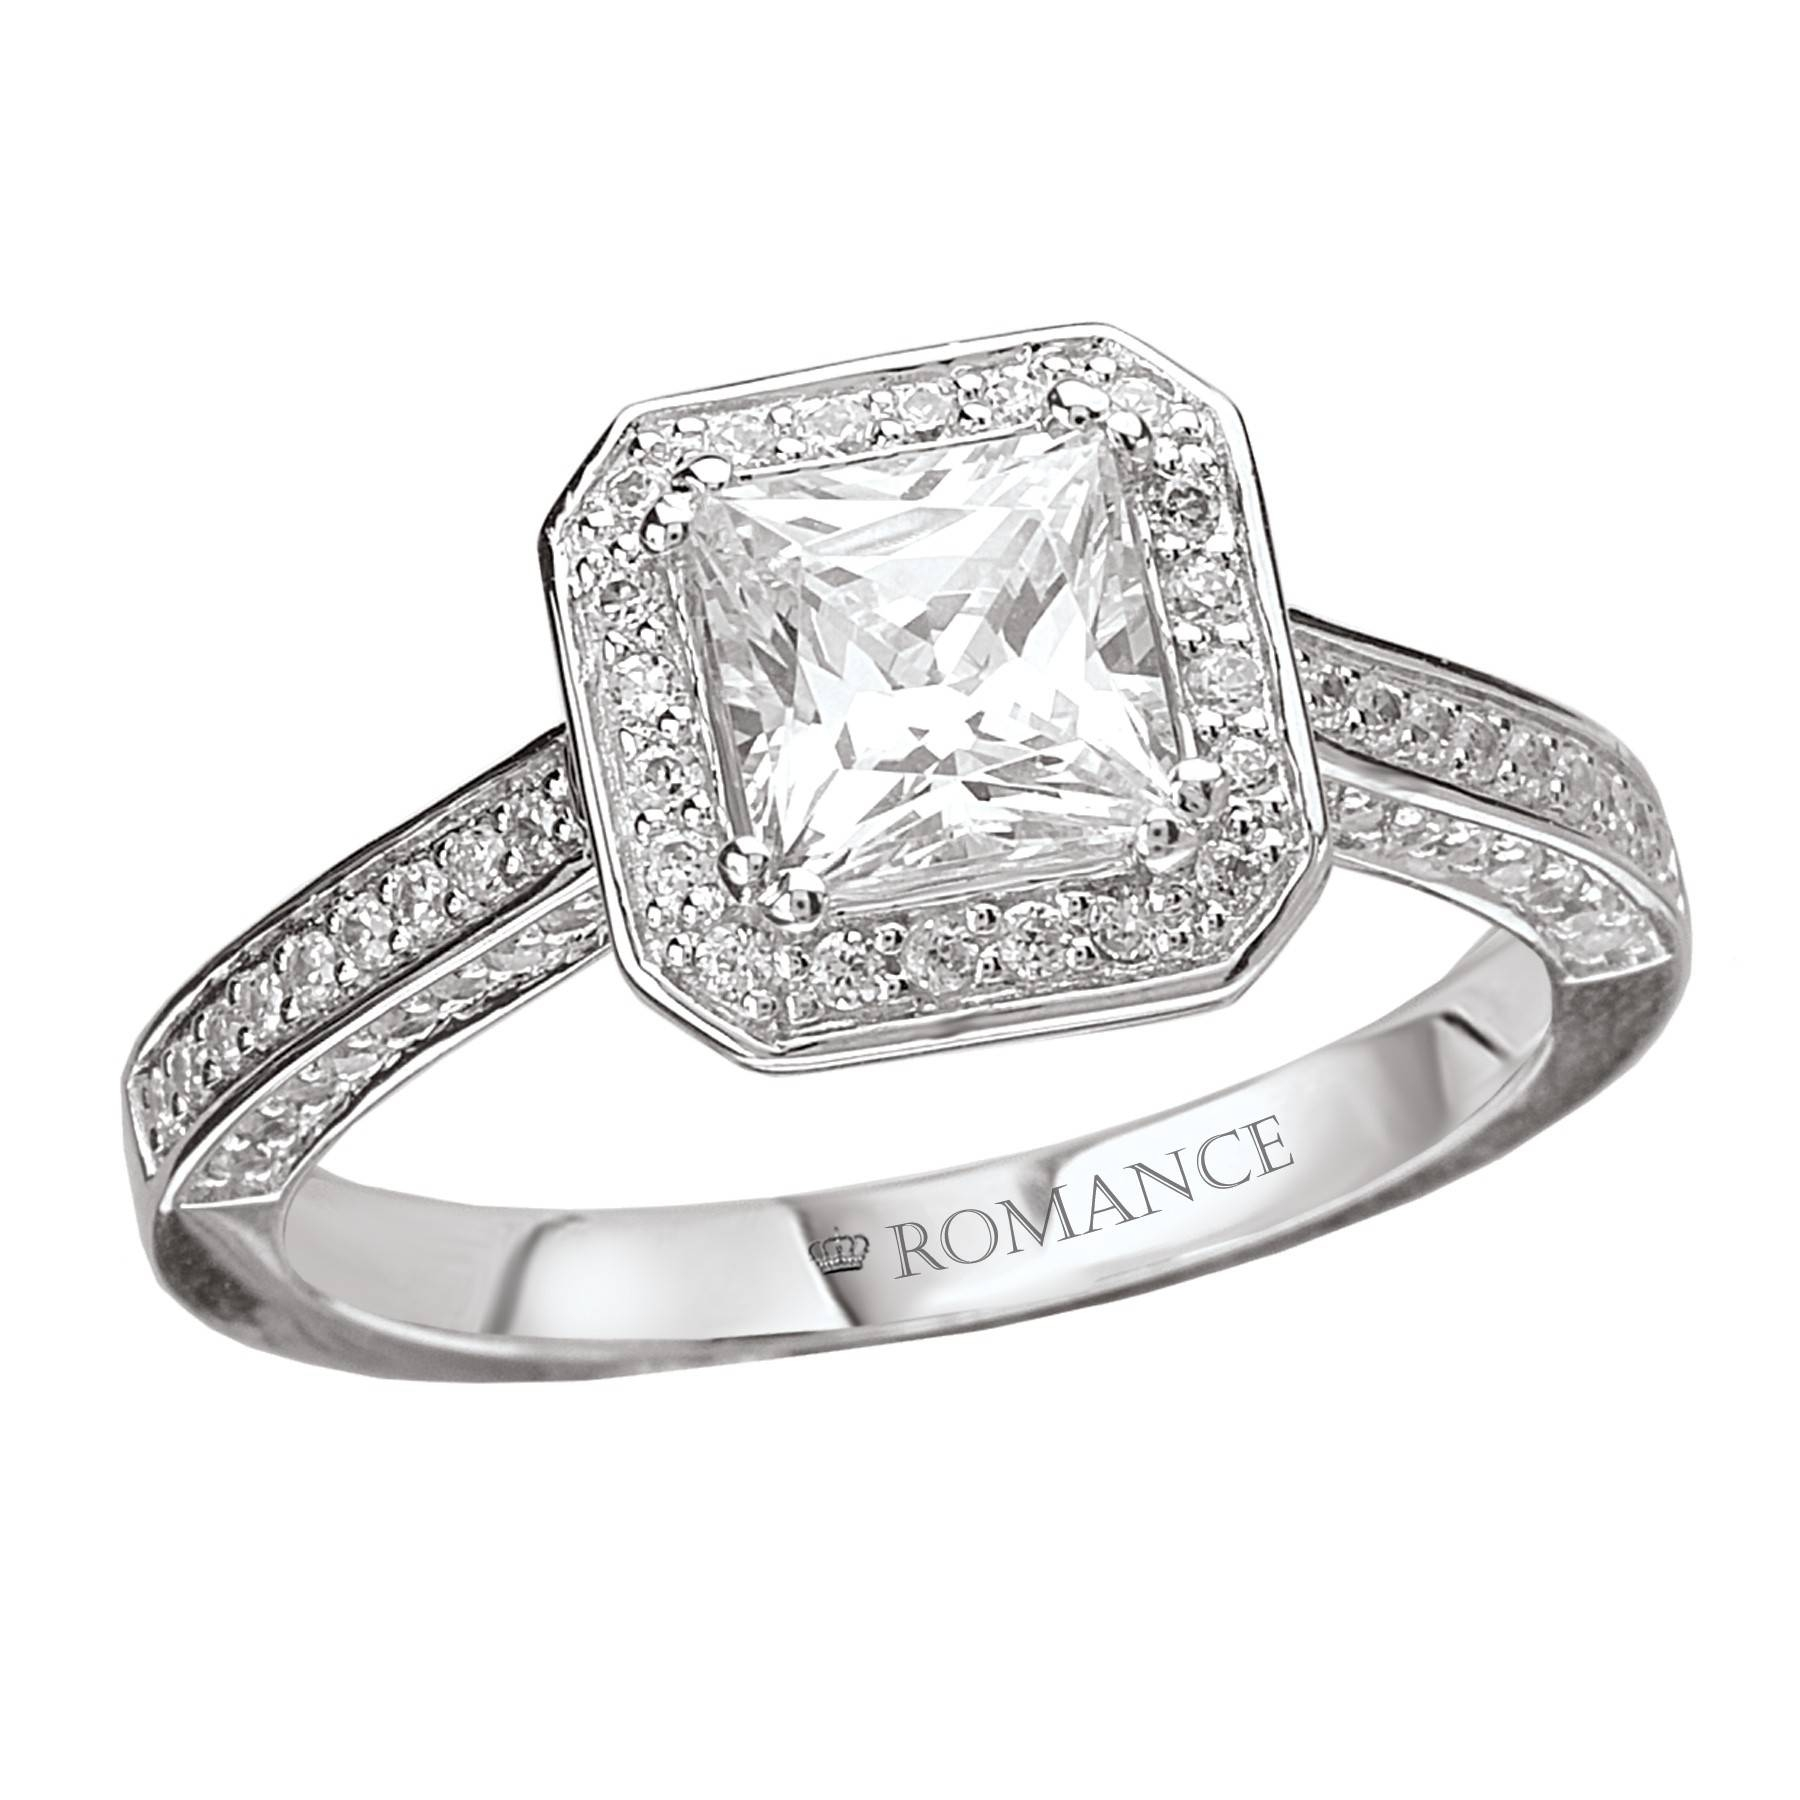 Impressive Ideas Princess Cut Wedding Rings For Women Beautiful Intended For Princess Cut Wedding Rings For Women (View 2 of 15)